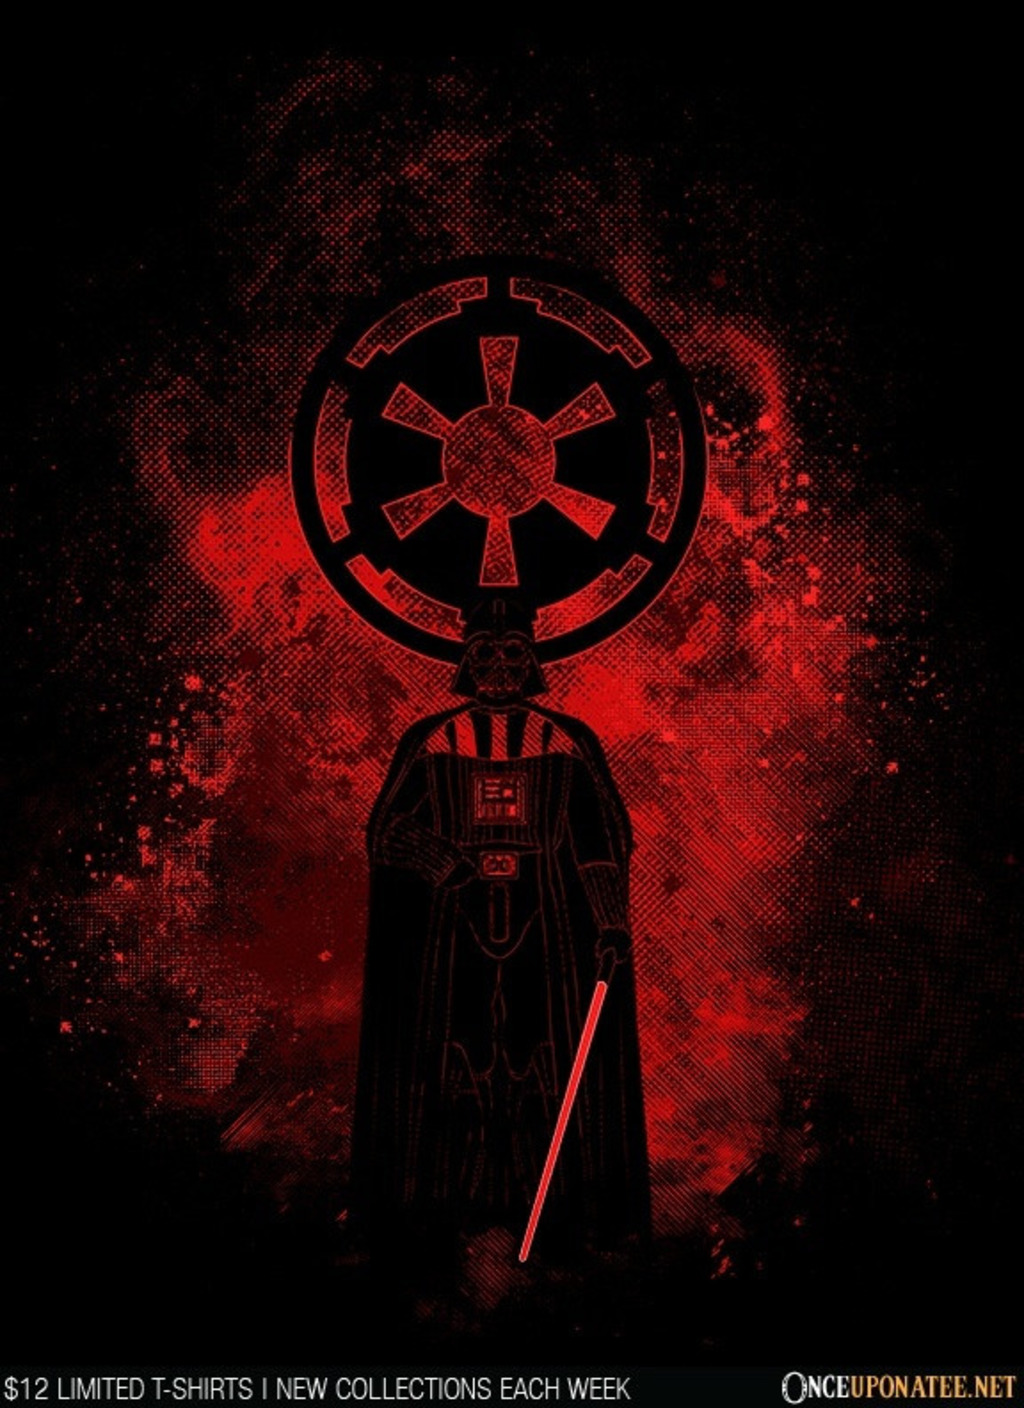 Once Upon a Tee: Empire Art